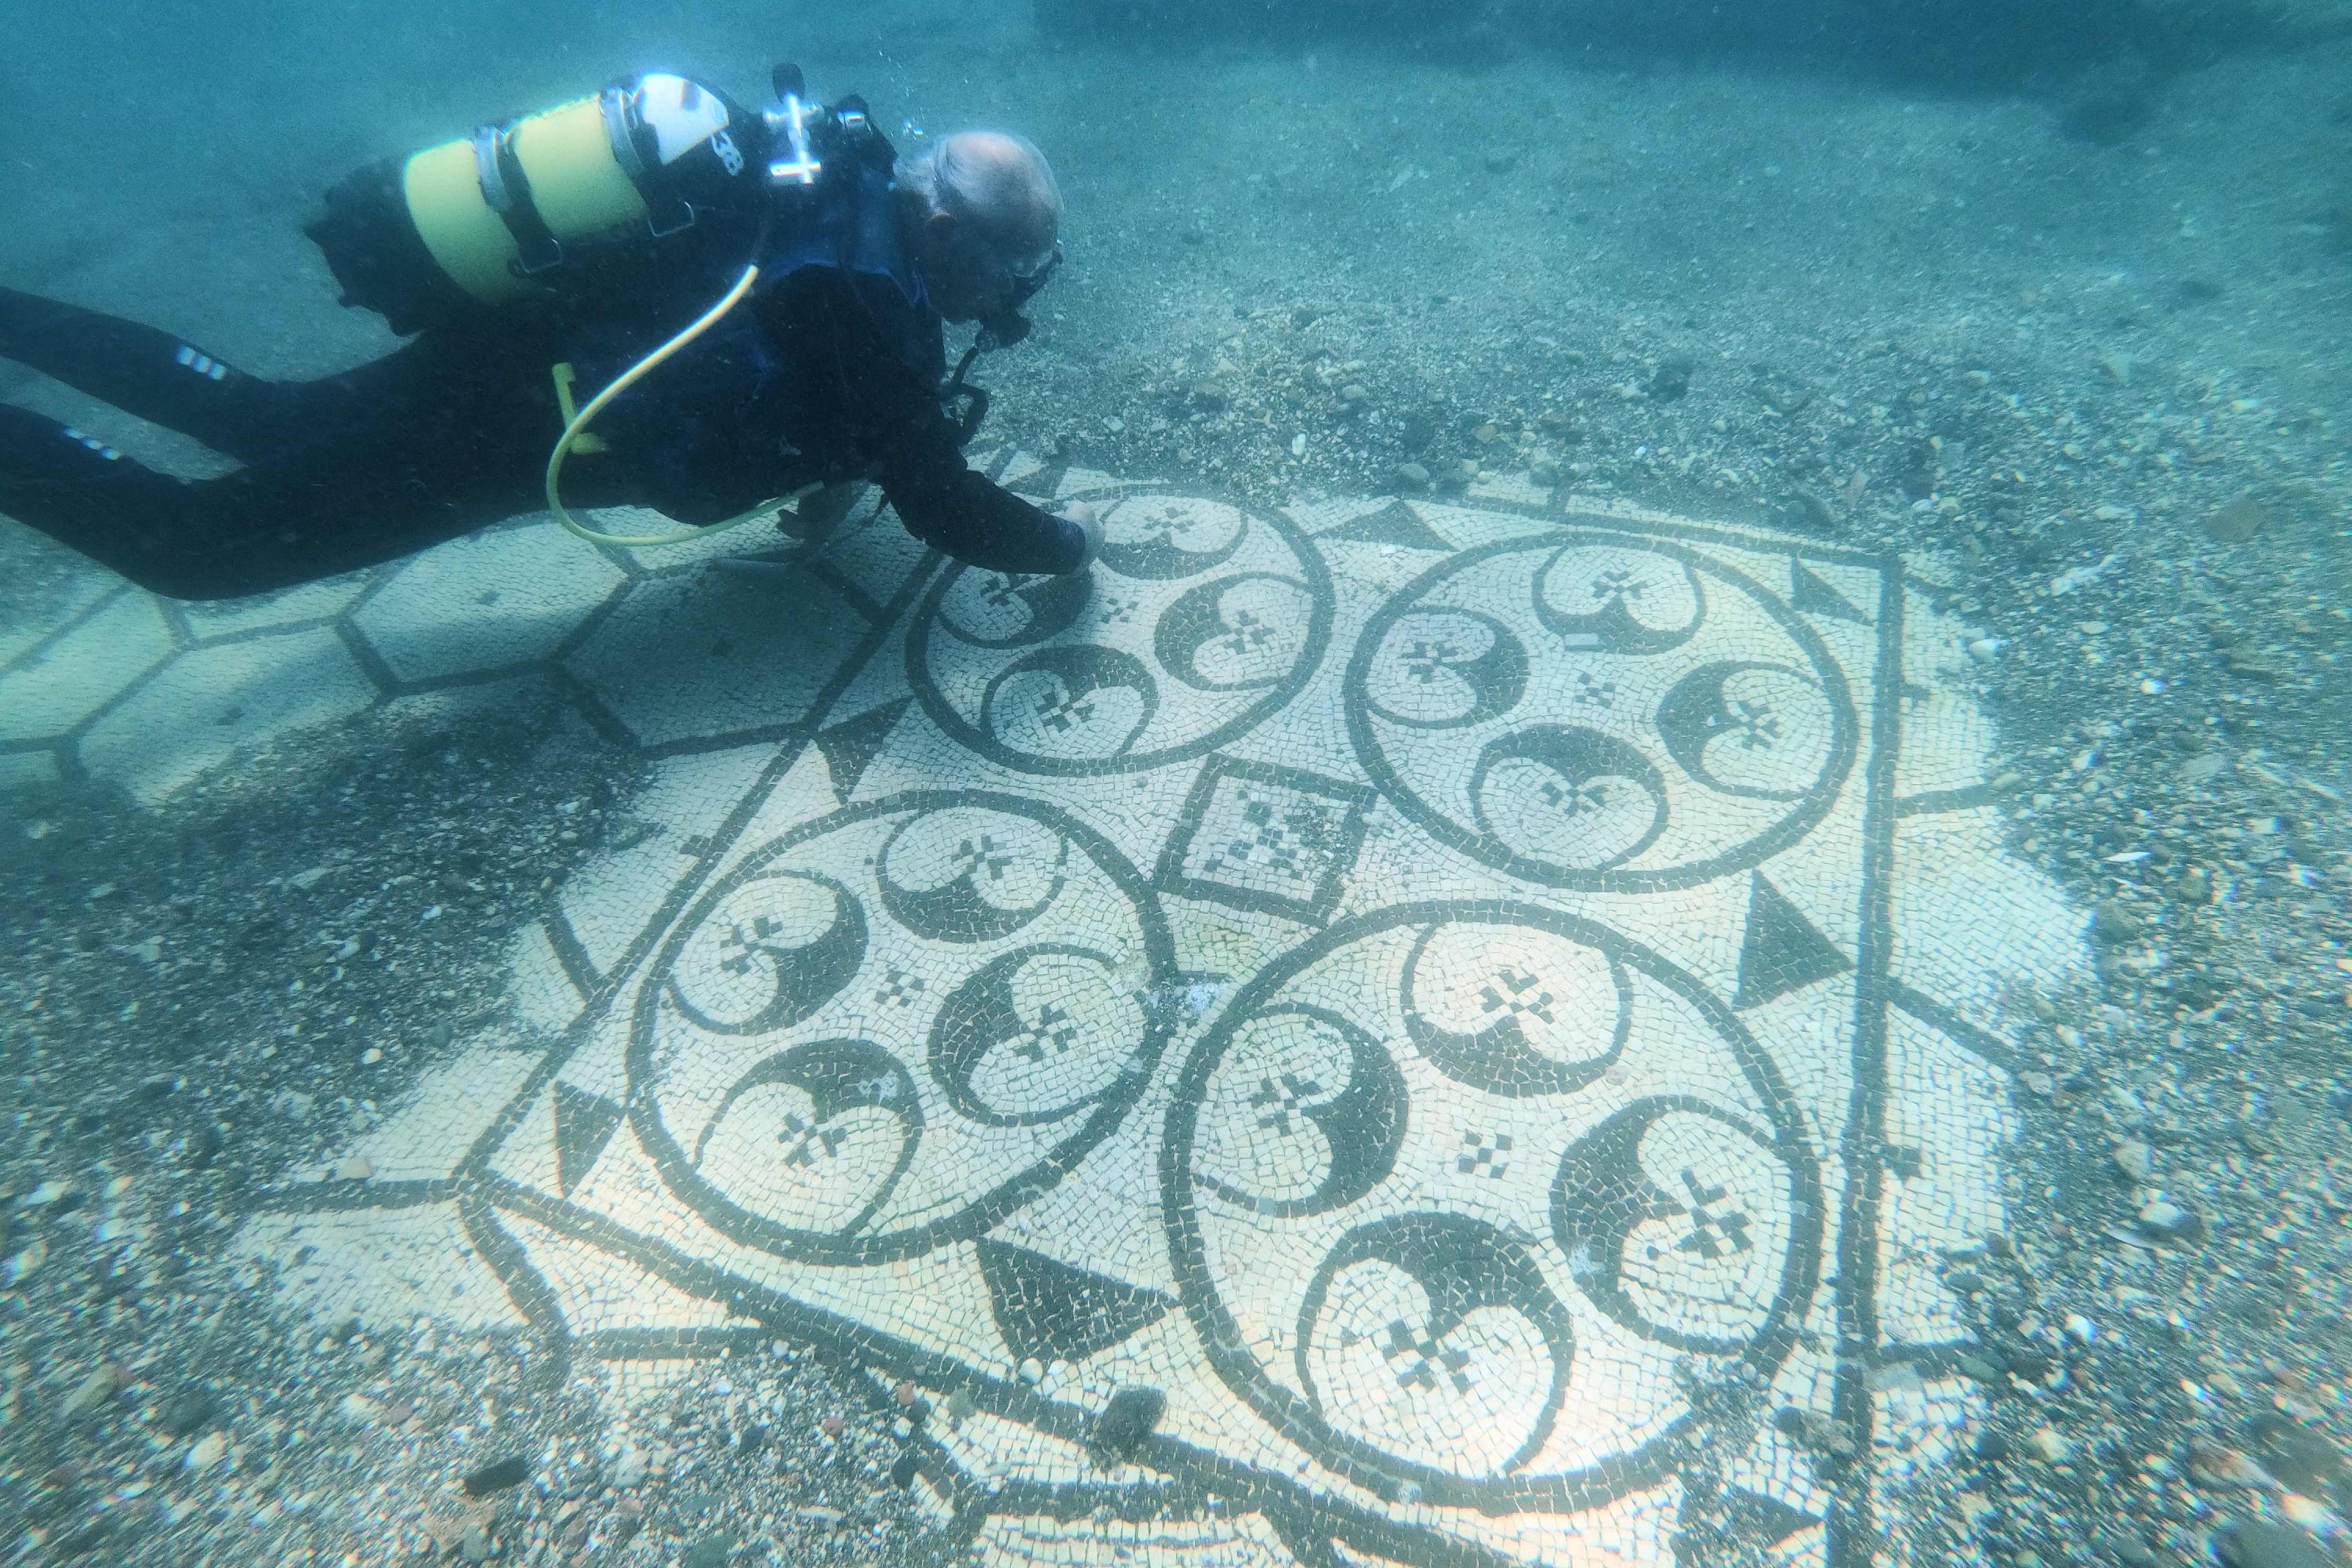 A dive guide shows tourists a mosaic of Villa a Protiro, in the ancient submerged Roman city of Baiae, in Pozzuoli, near Naples, Italy on August 18, 2021 (AFP photo)